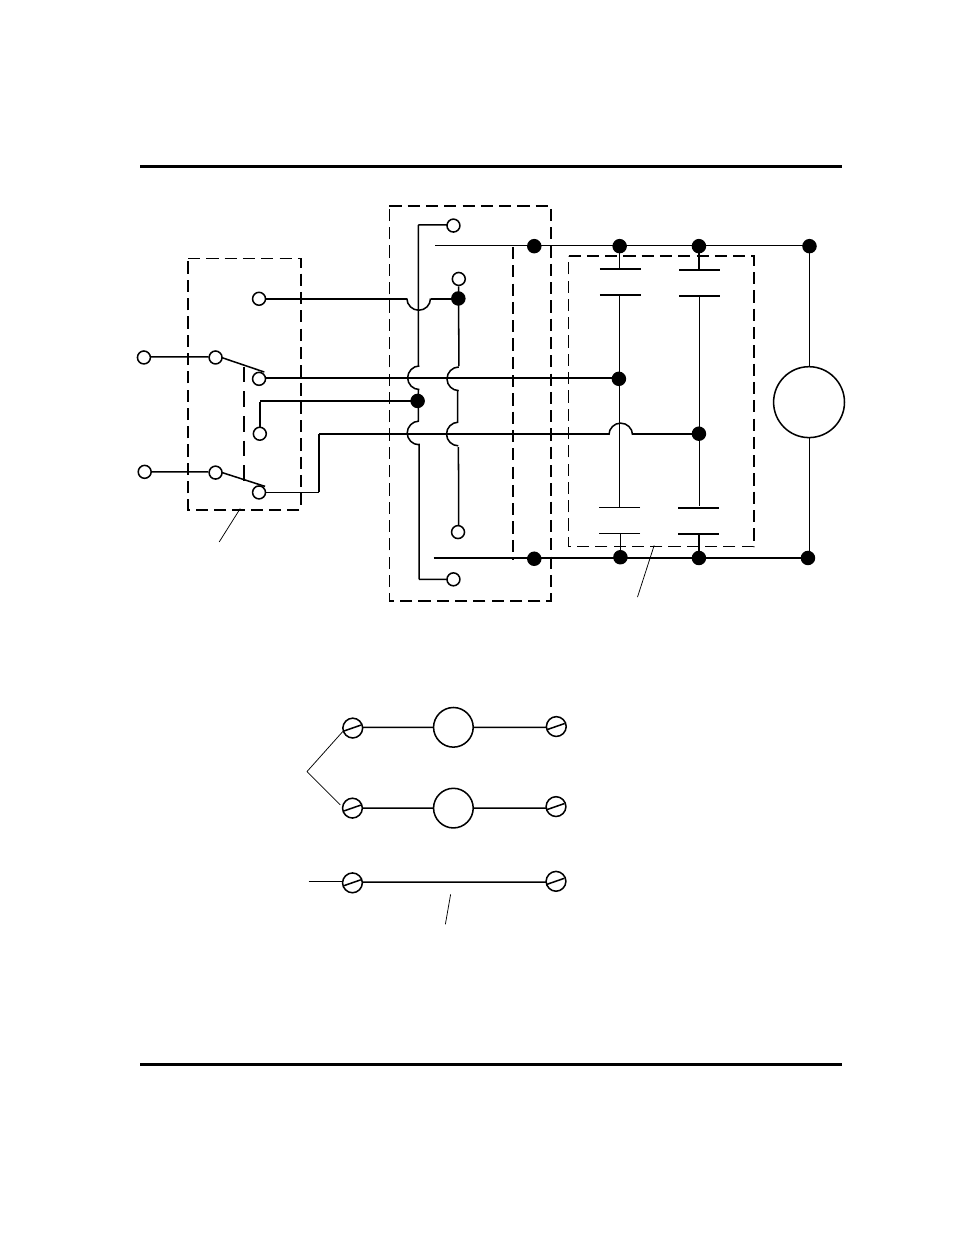 Figure 1 4 Typical Dc Lifter Wiring 5 Installation To Cutting Pole Mounted Controller Diagram Machine Torch Hypertherm Thc2 Height Control User Manual Page 13 41